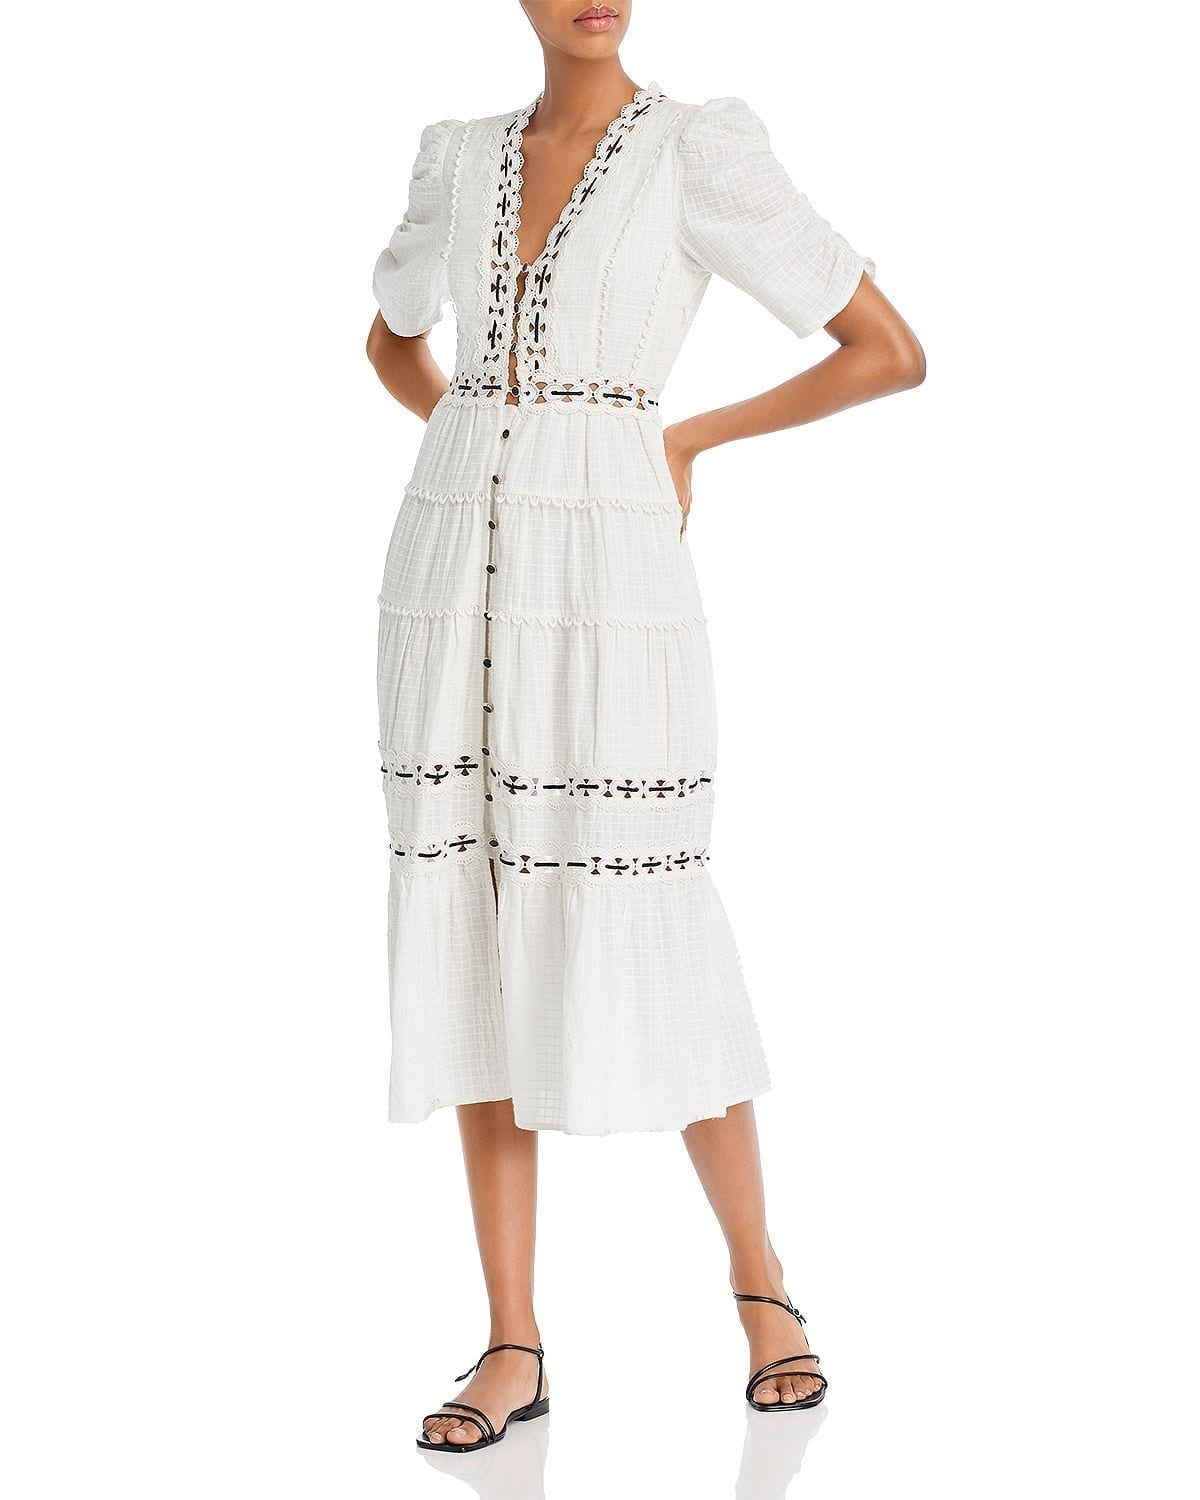 RAHI Marbella Nicola Cotton Dress